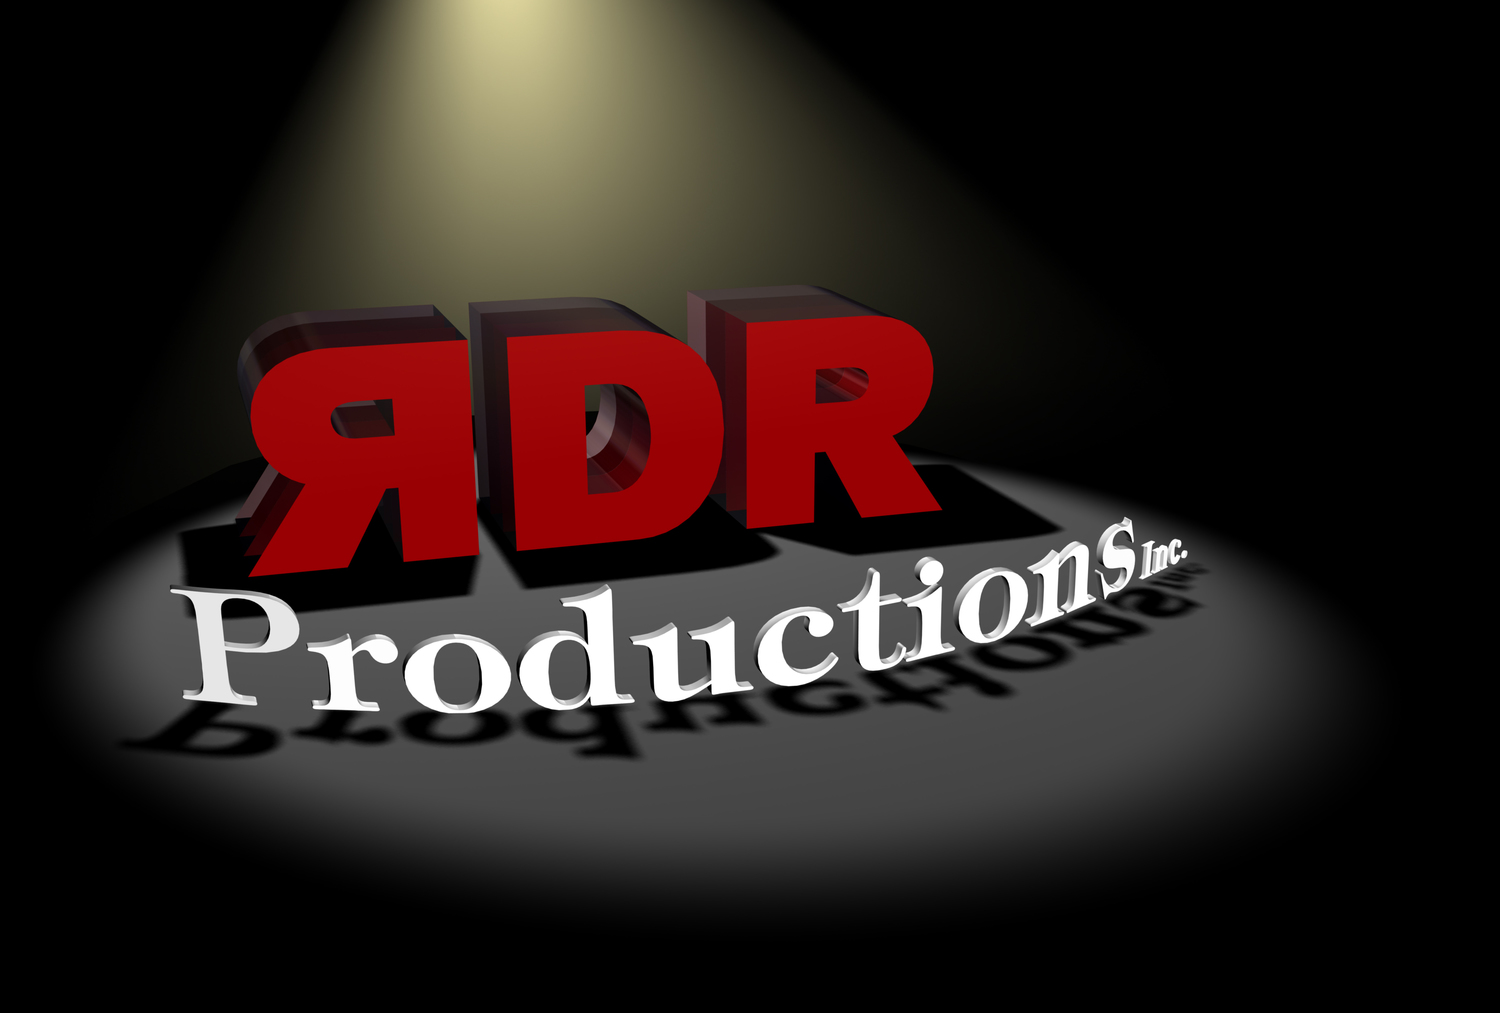 Video Production Chicago - RDR Productions, Inc. - Corporate Video and Film Production